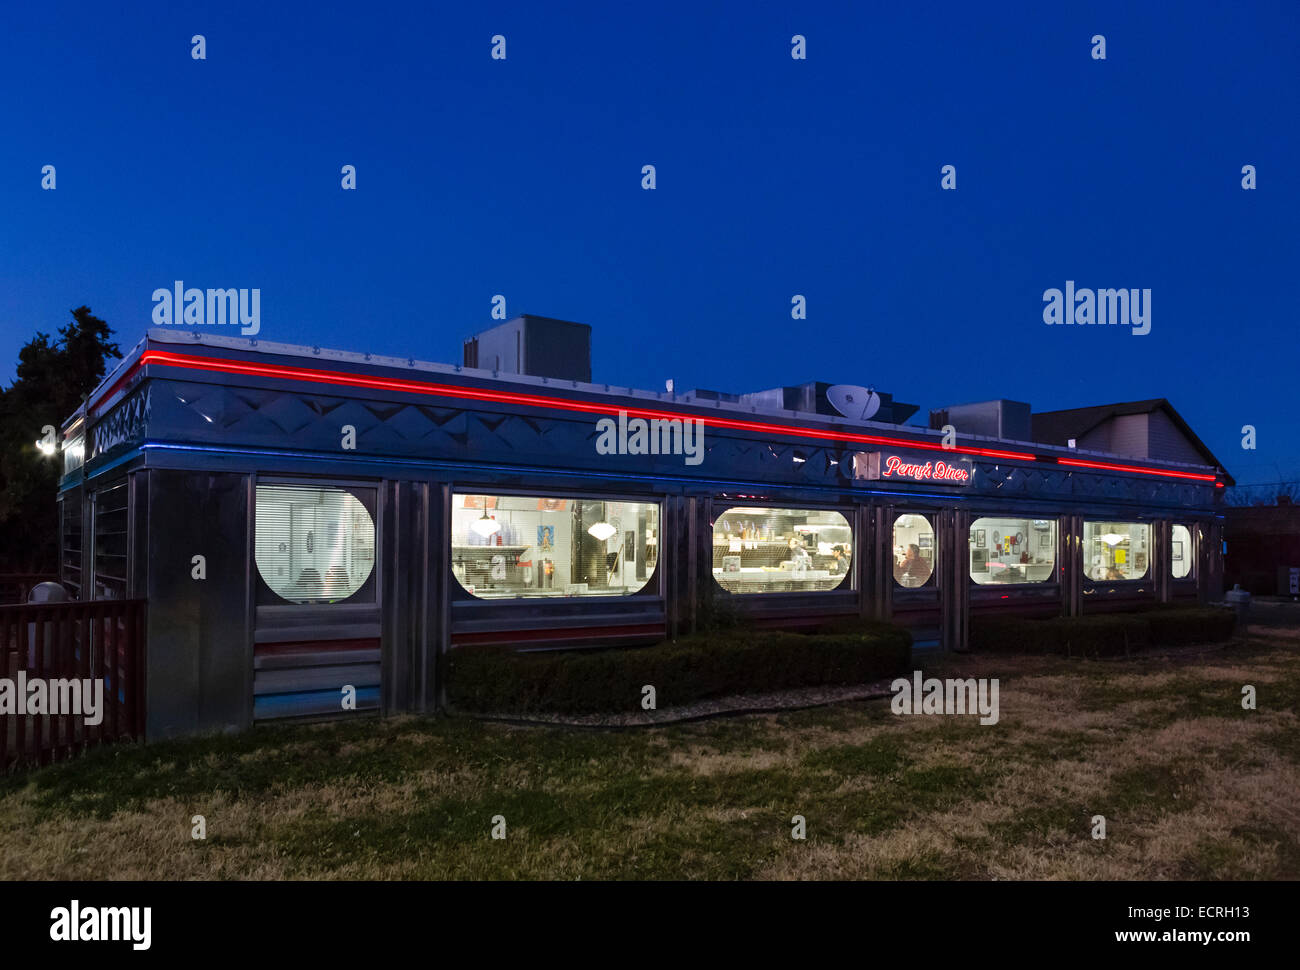 Penny's Diner, a traditional railroad car style american diner in Alpine, Texas, USA - Stock Image